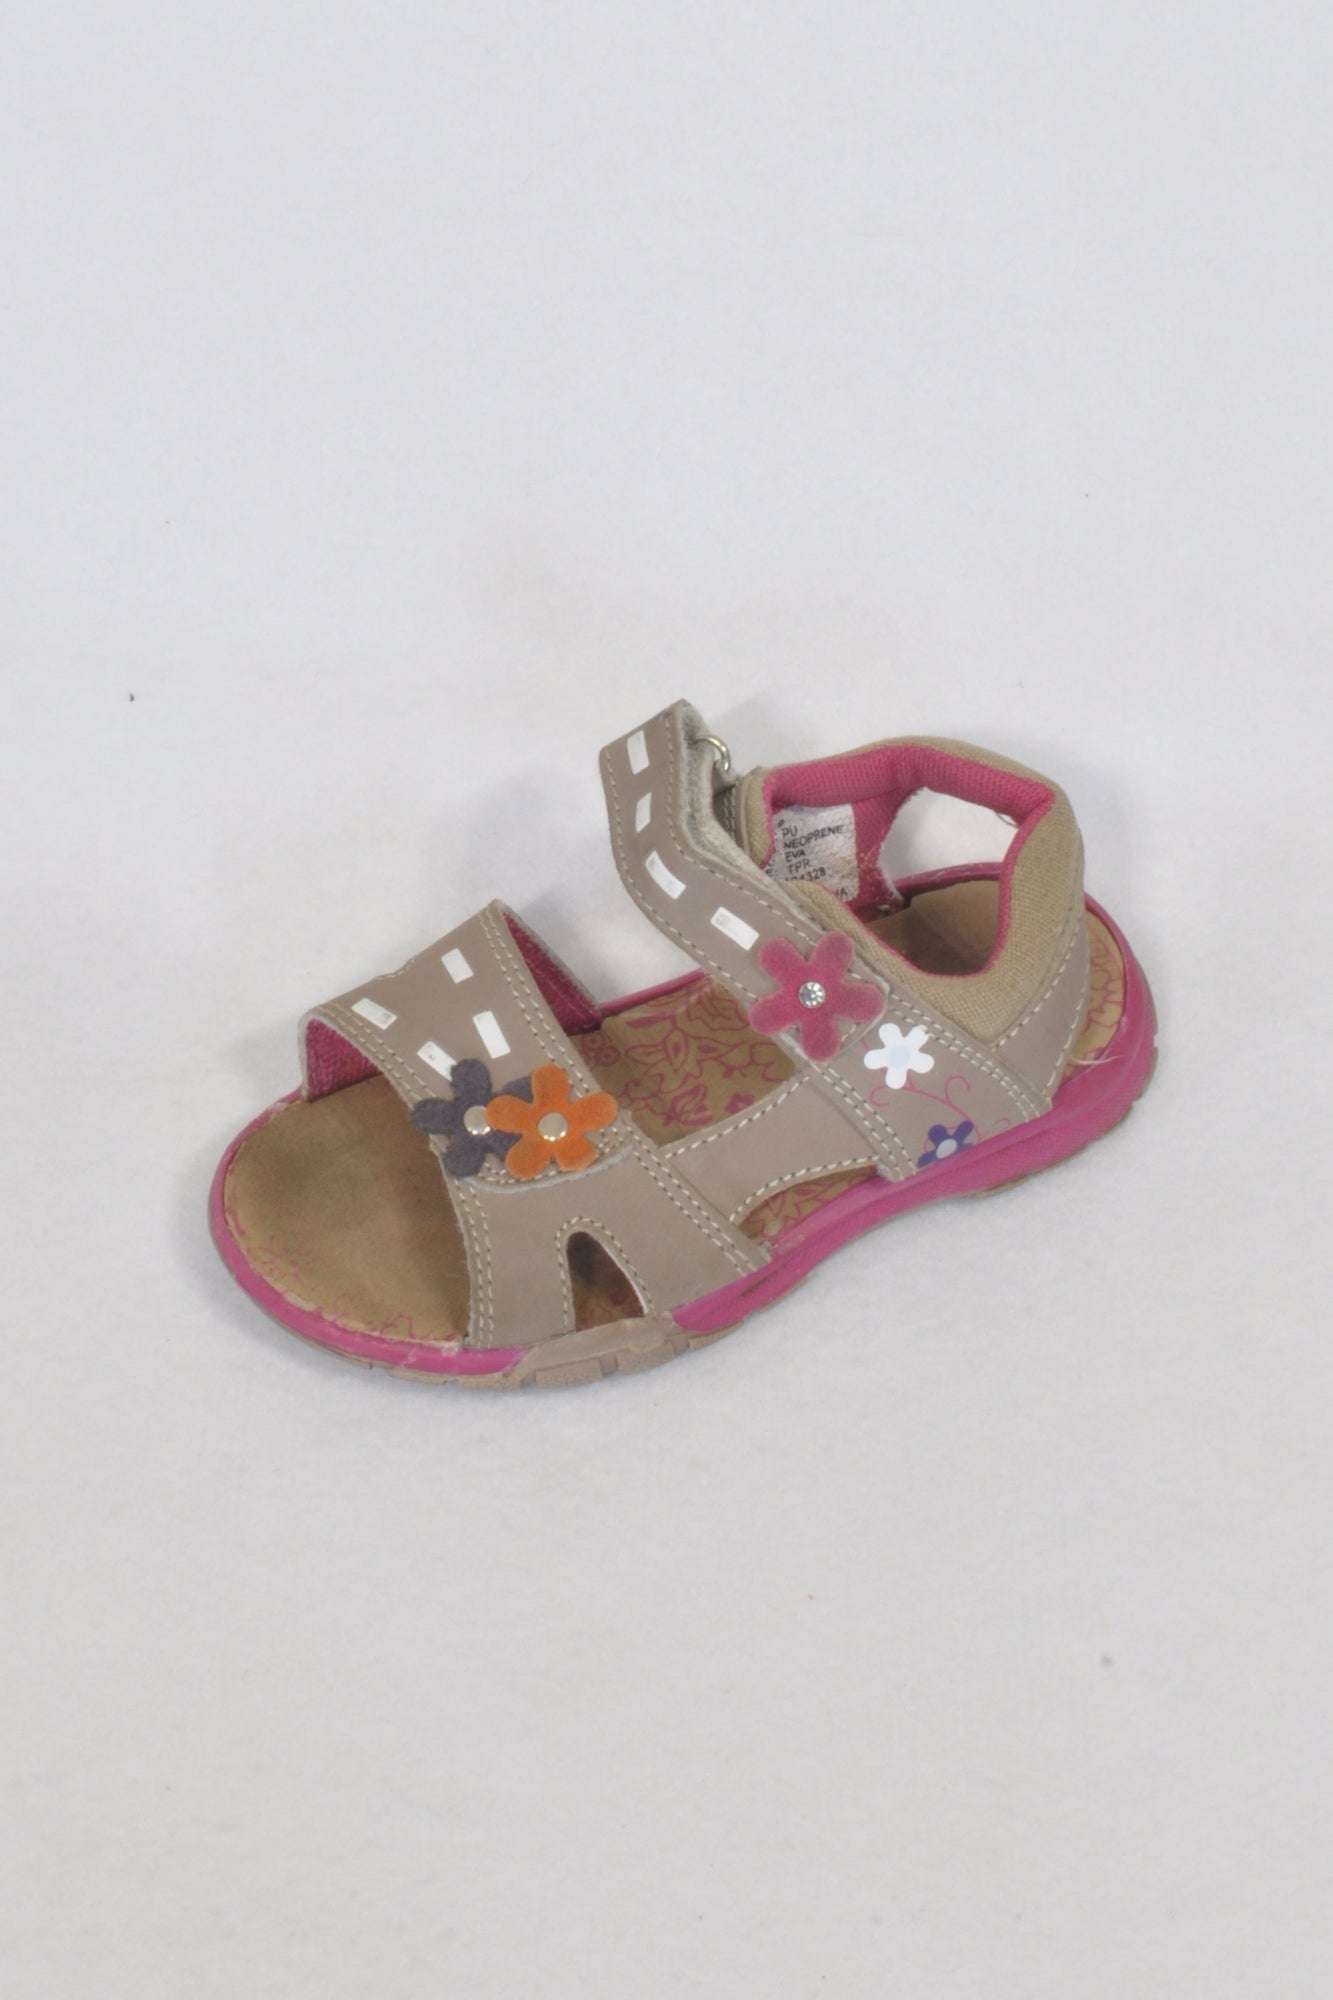 Ackermans Tan Flower Sandal Shoes Girls 5-6 years